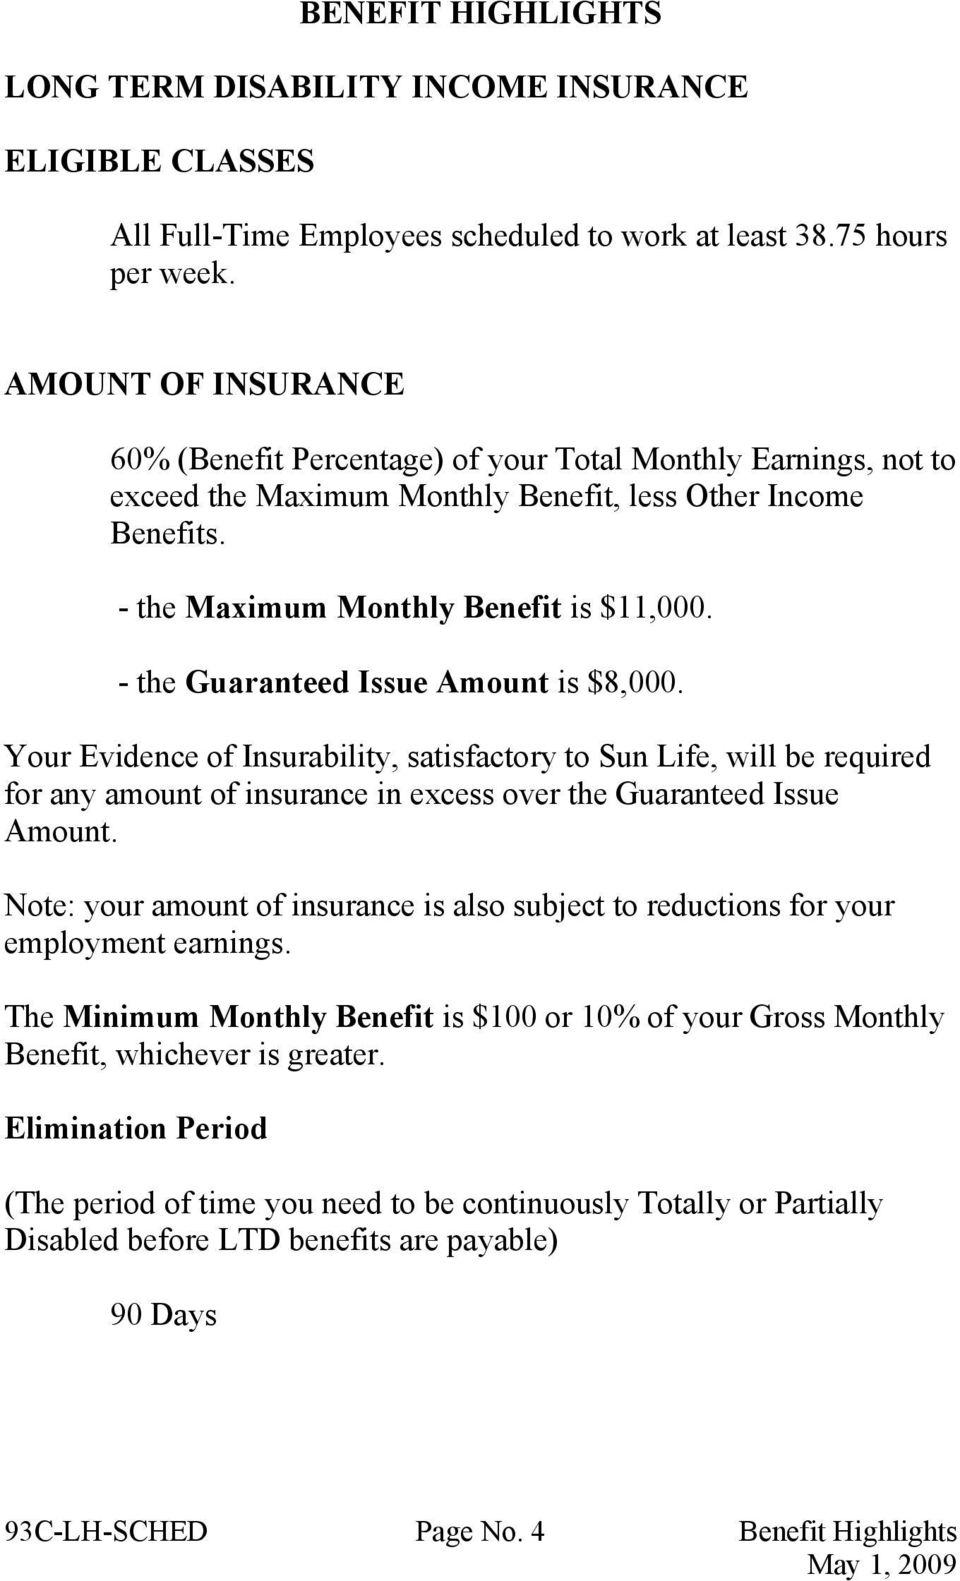 - the Guaranteed Issue Amount is $8,000. Your Evidence of Insurability, satisfactory to Sun Life, will be required for any amount of insurance in excess over the Guaranteed Issue Amount.